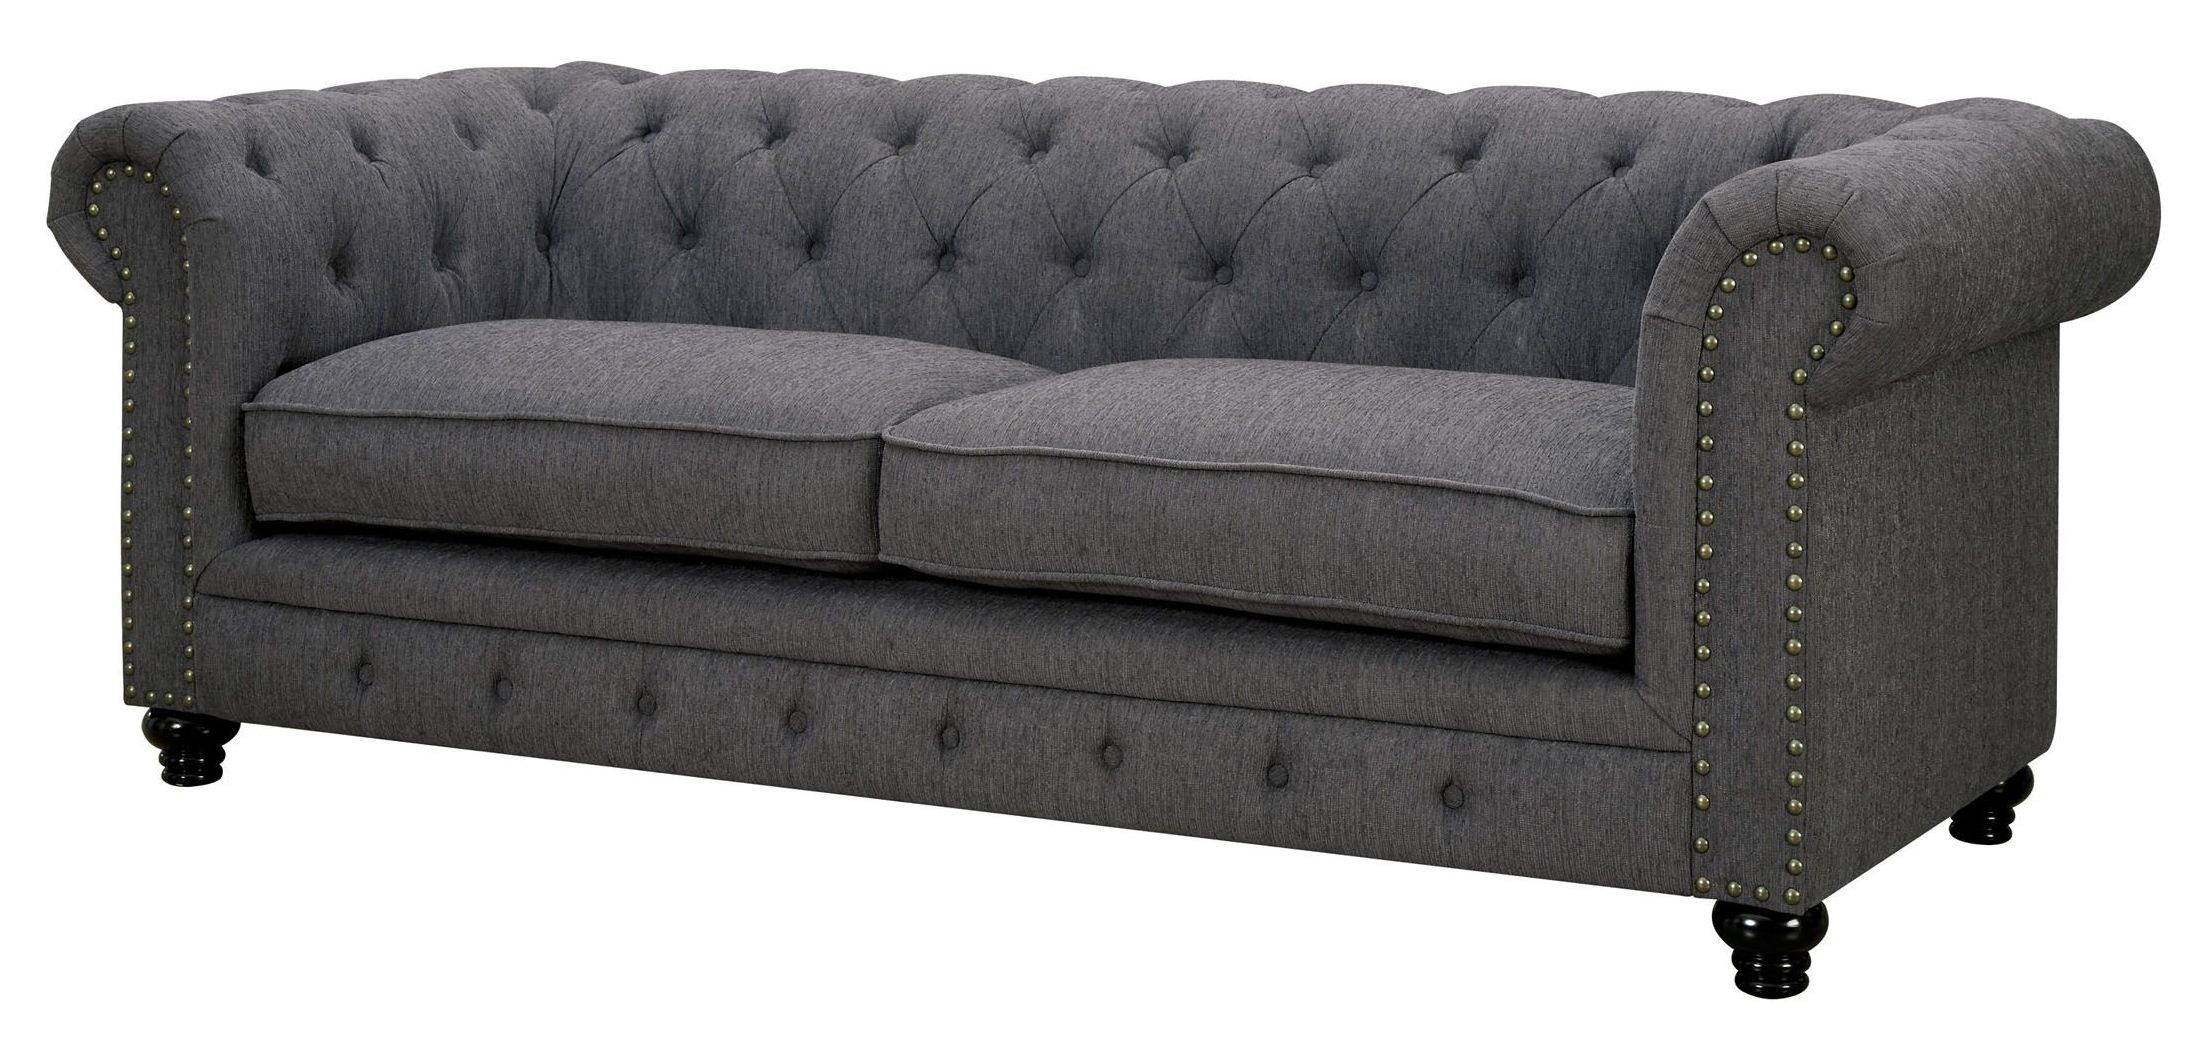 Stanford Gray Fabric Sofa from Furniture of America